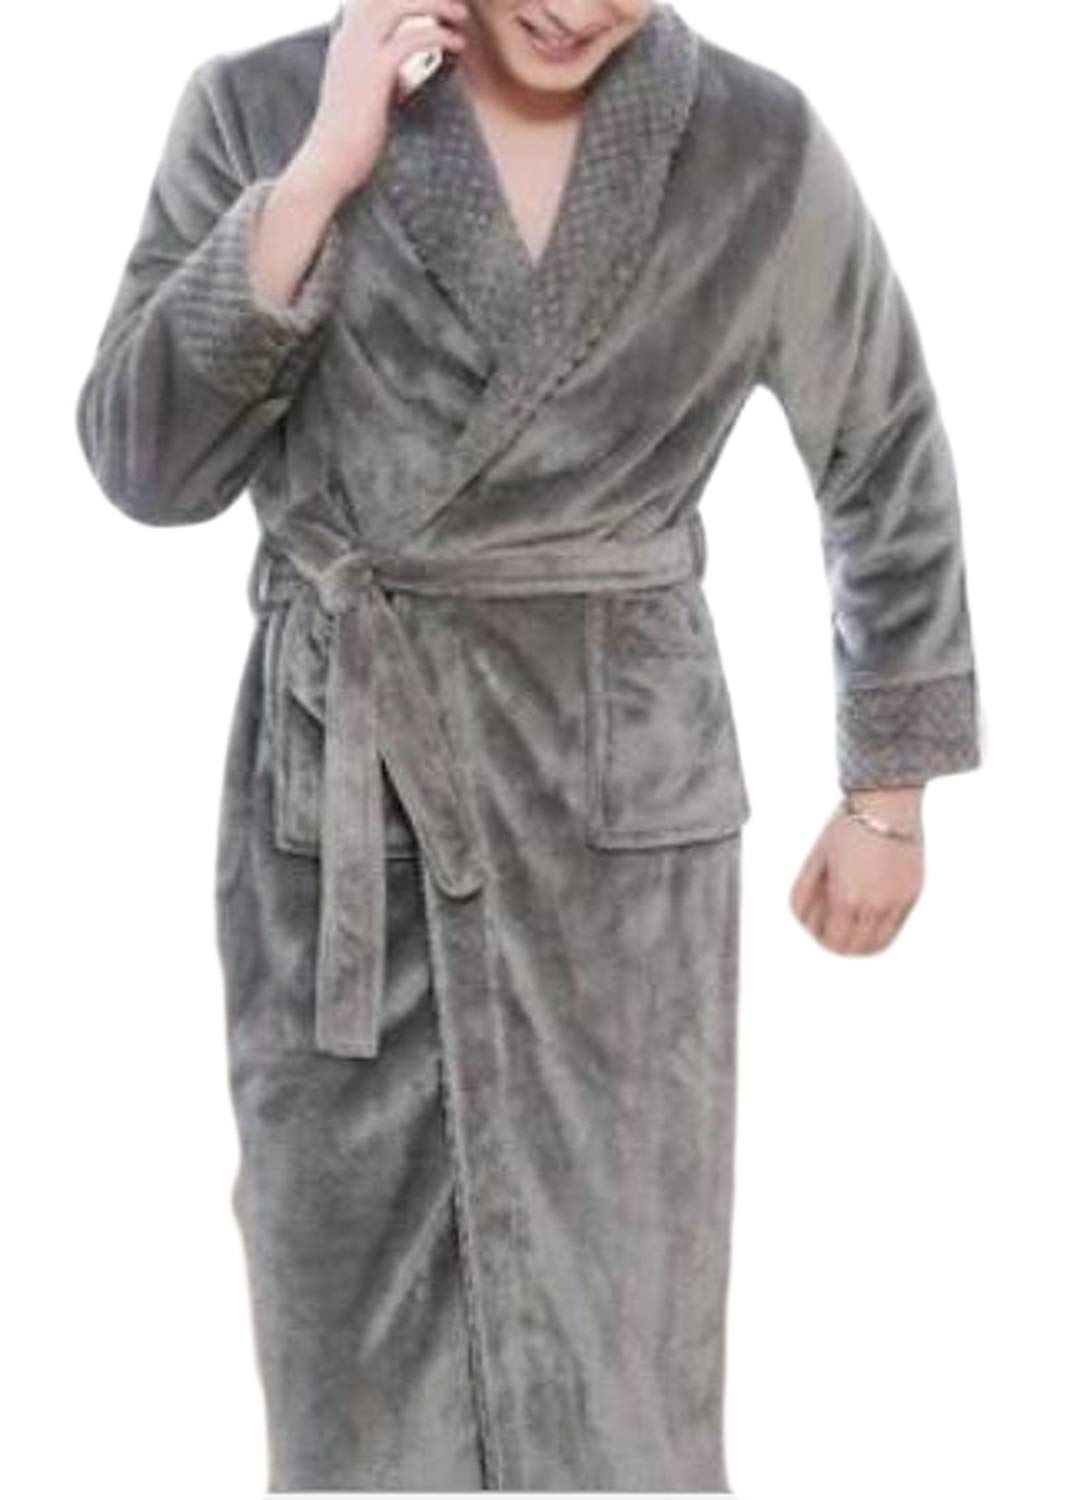 WSPLYSPJY Mens Robes Winter Warm Thicken Elong Flannel Bathrobe with Belt